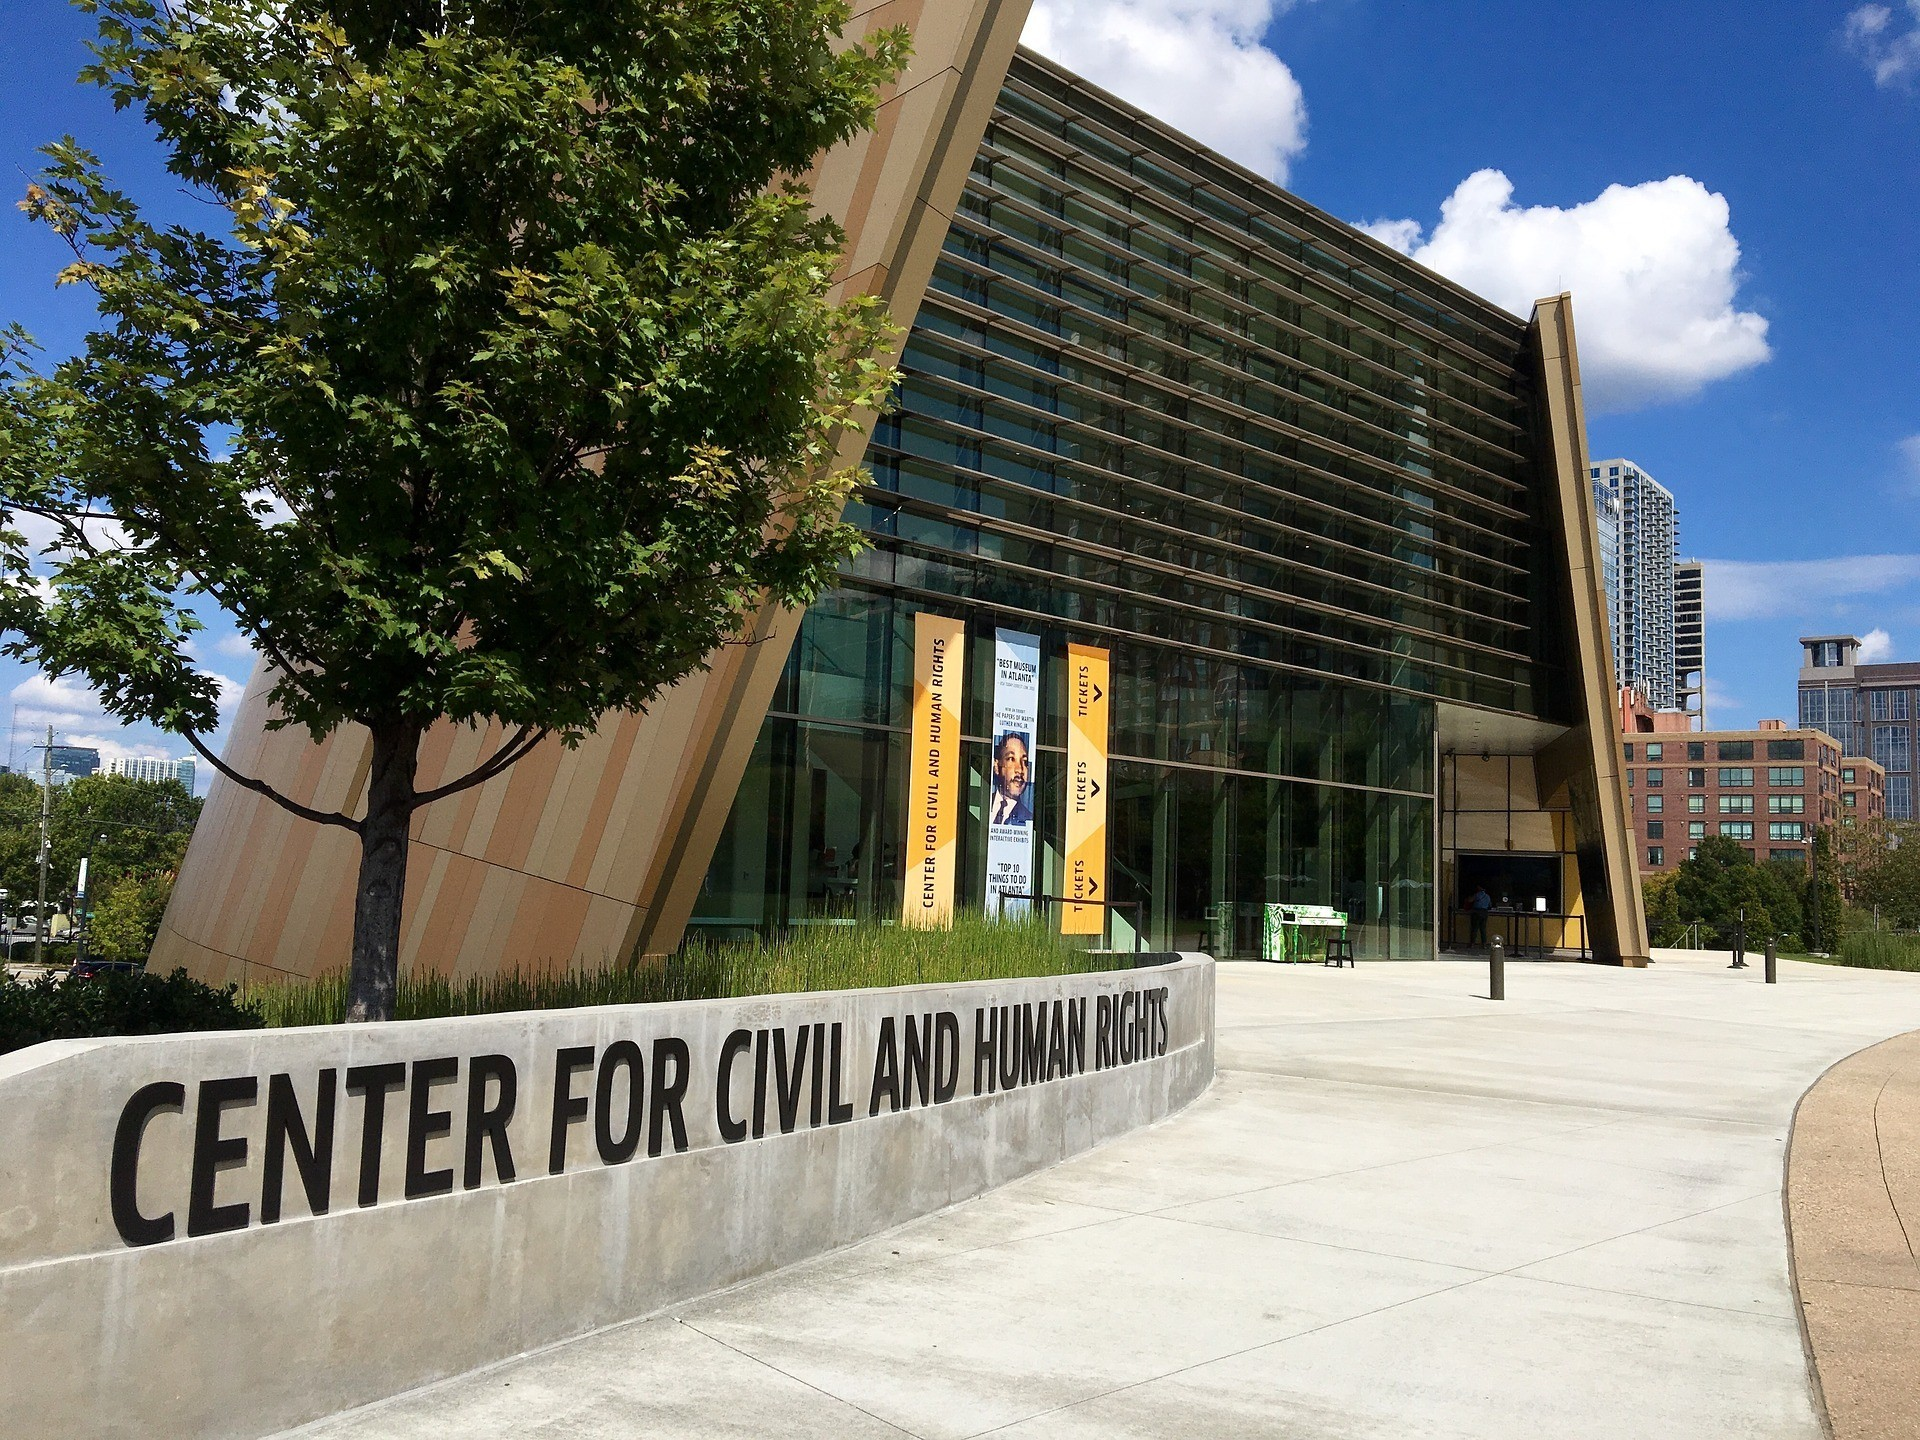 Center for civil rights